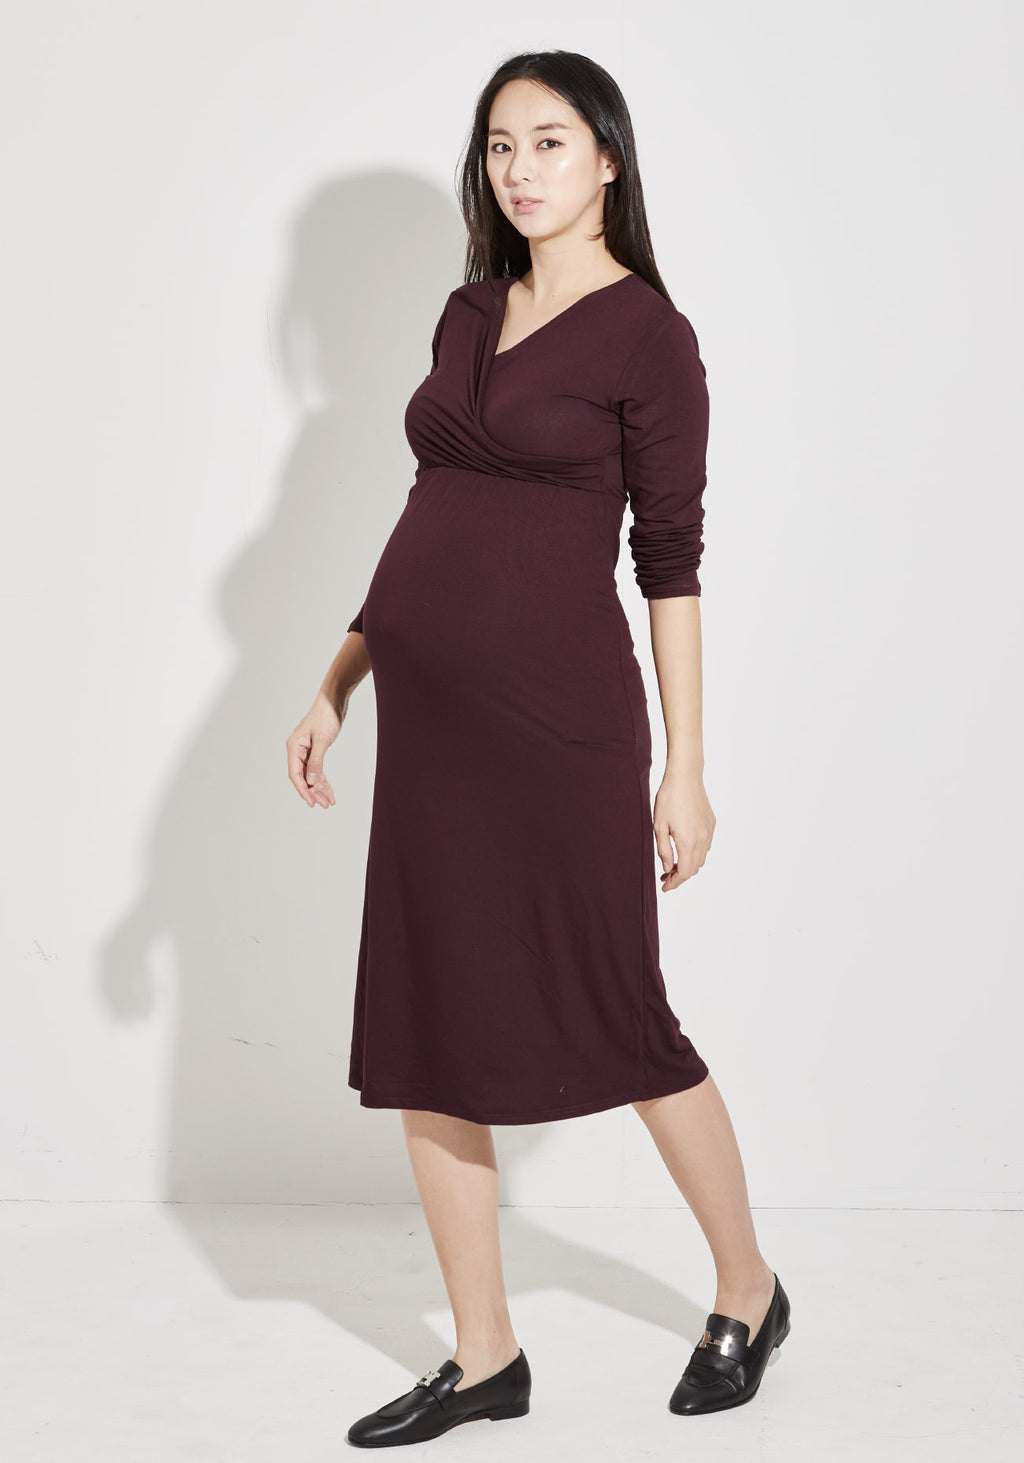 PUDDING NURSING JERSEY DRESS